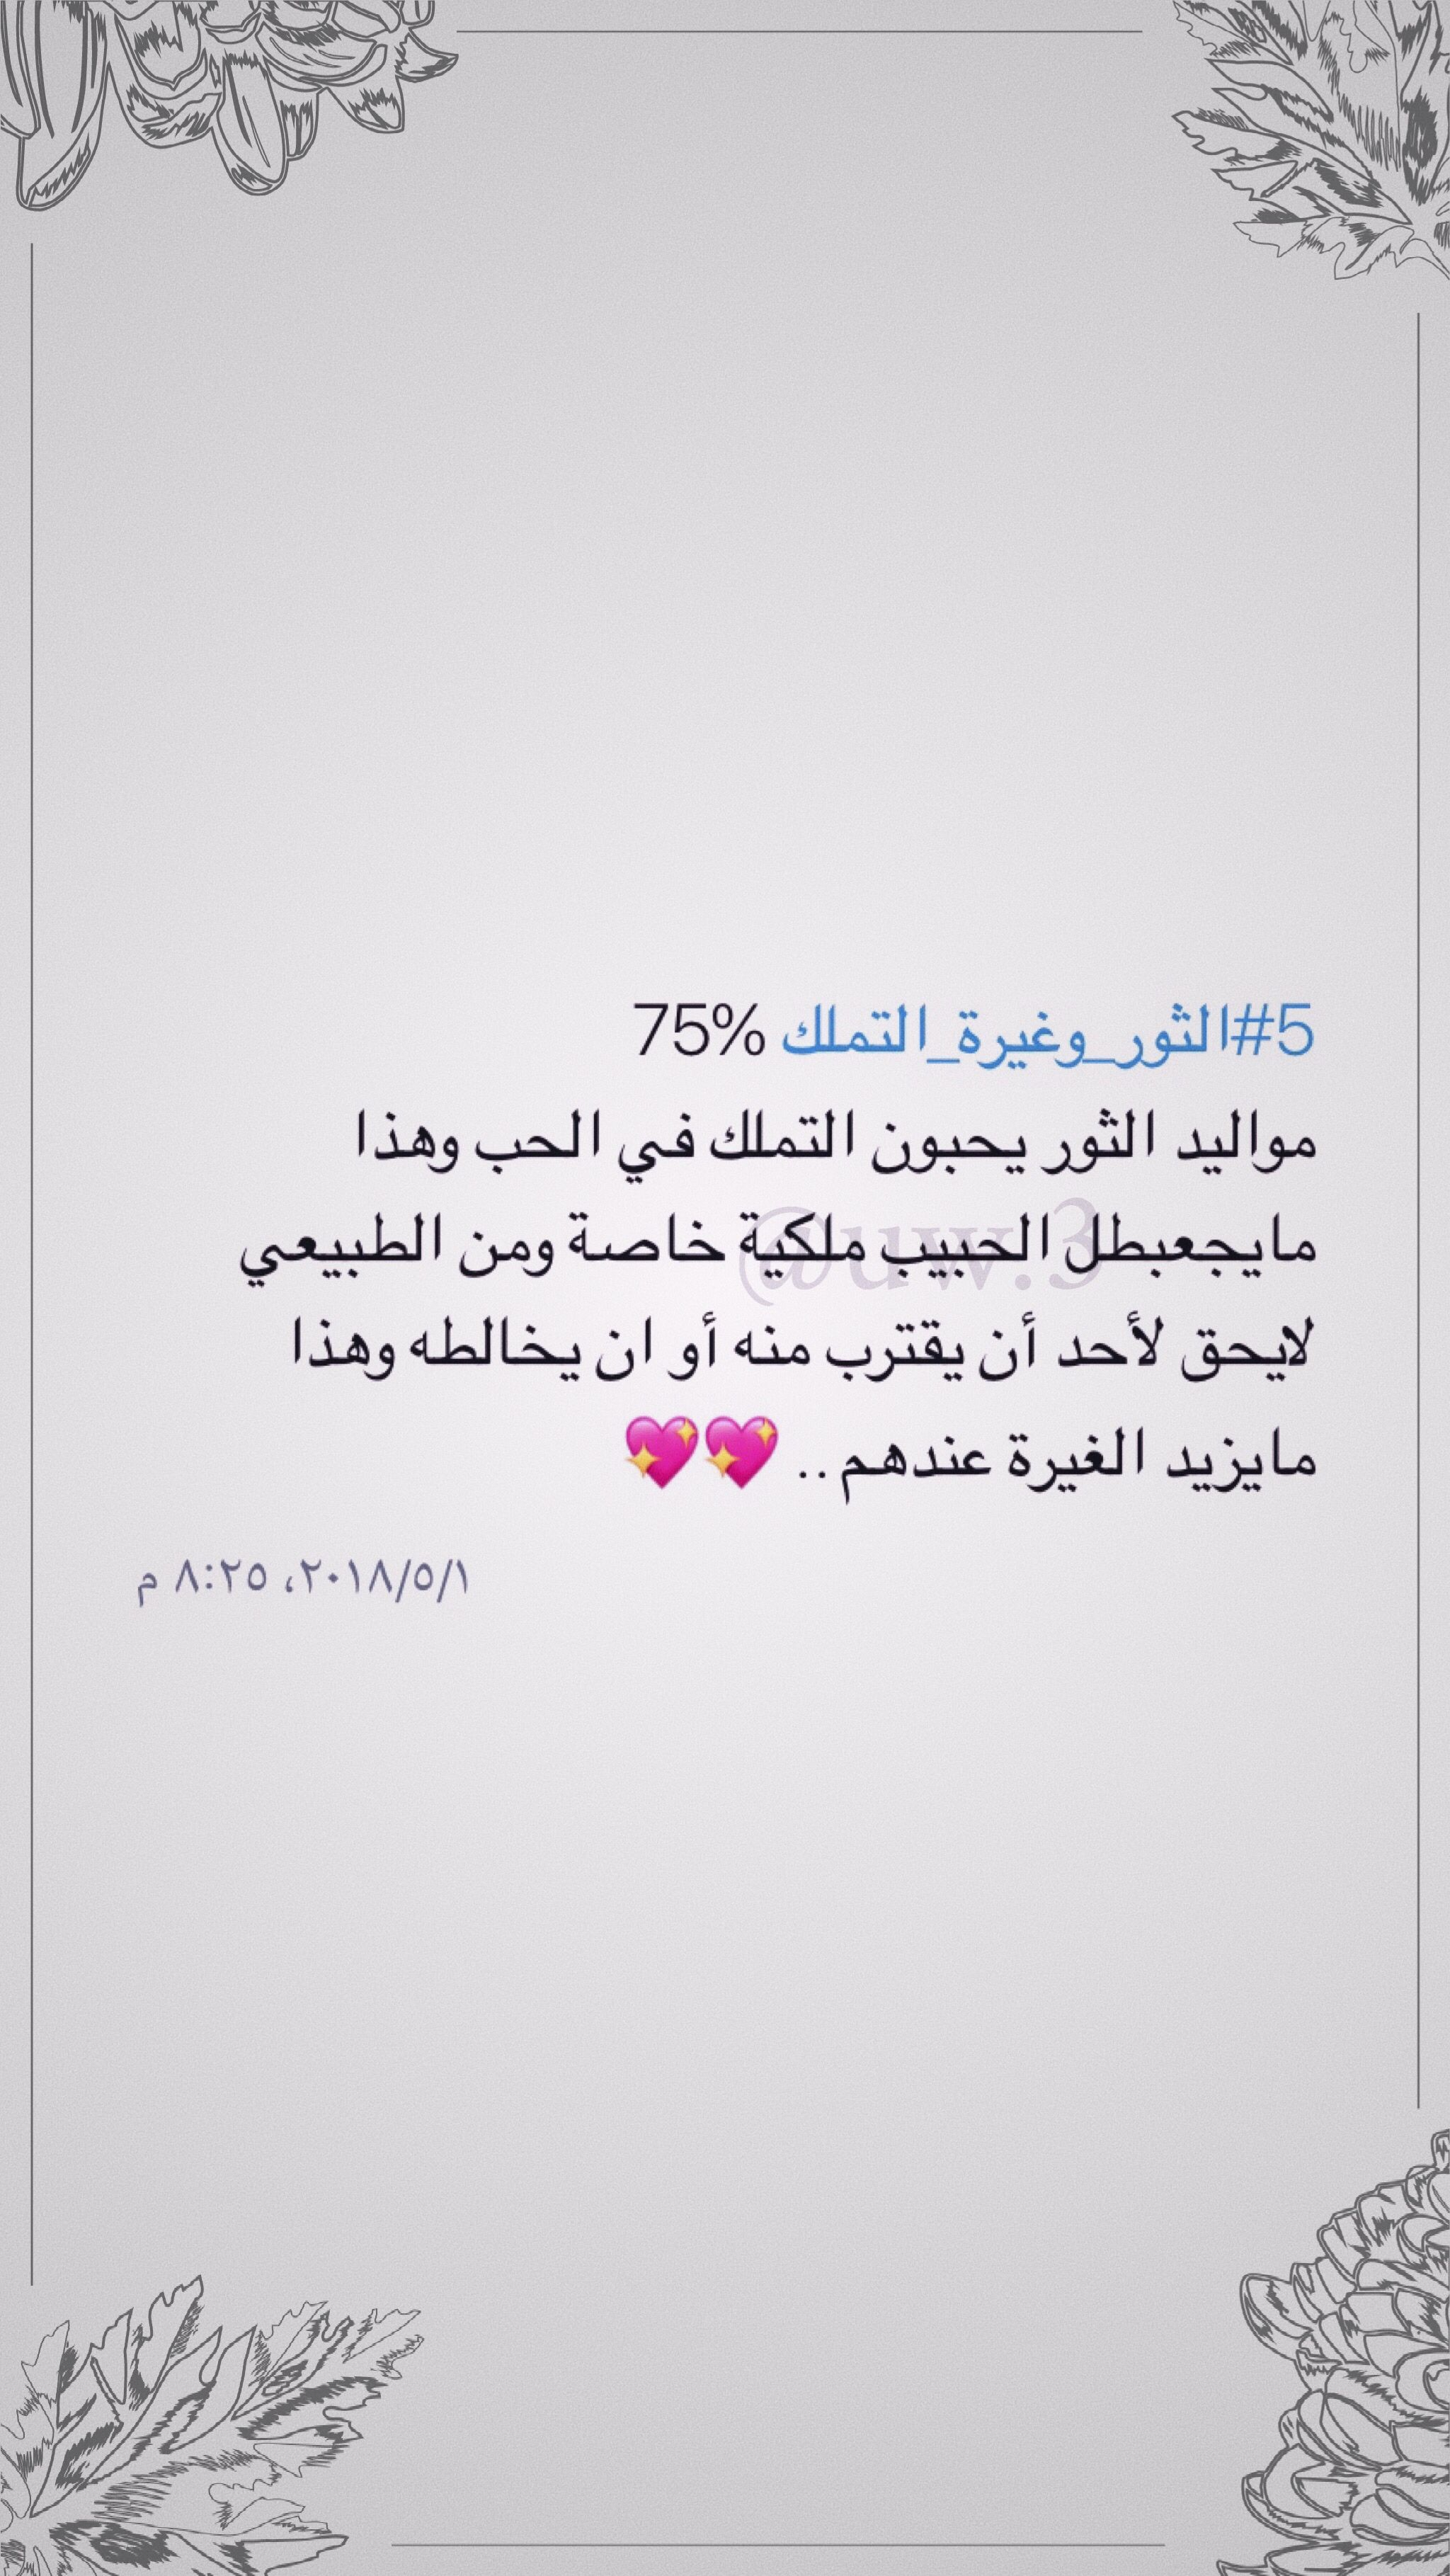 Uploaded By Sham Find Images And Videos About Arab Words And In Arabic On We Heart It The App To Get Spirit Quotes Funny Dating Quotes Funny Arabic Quotes